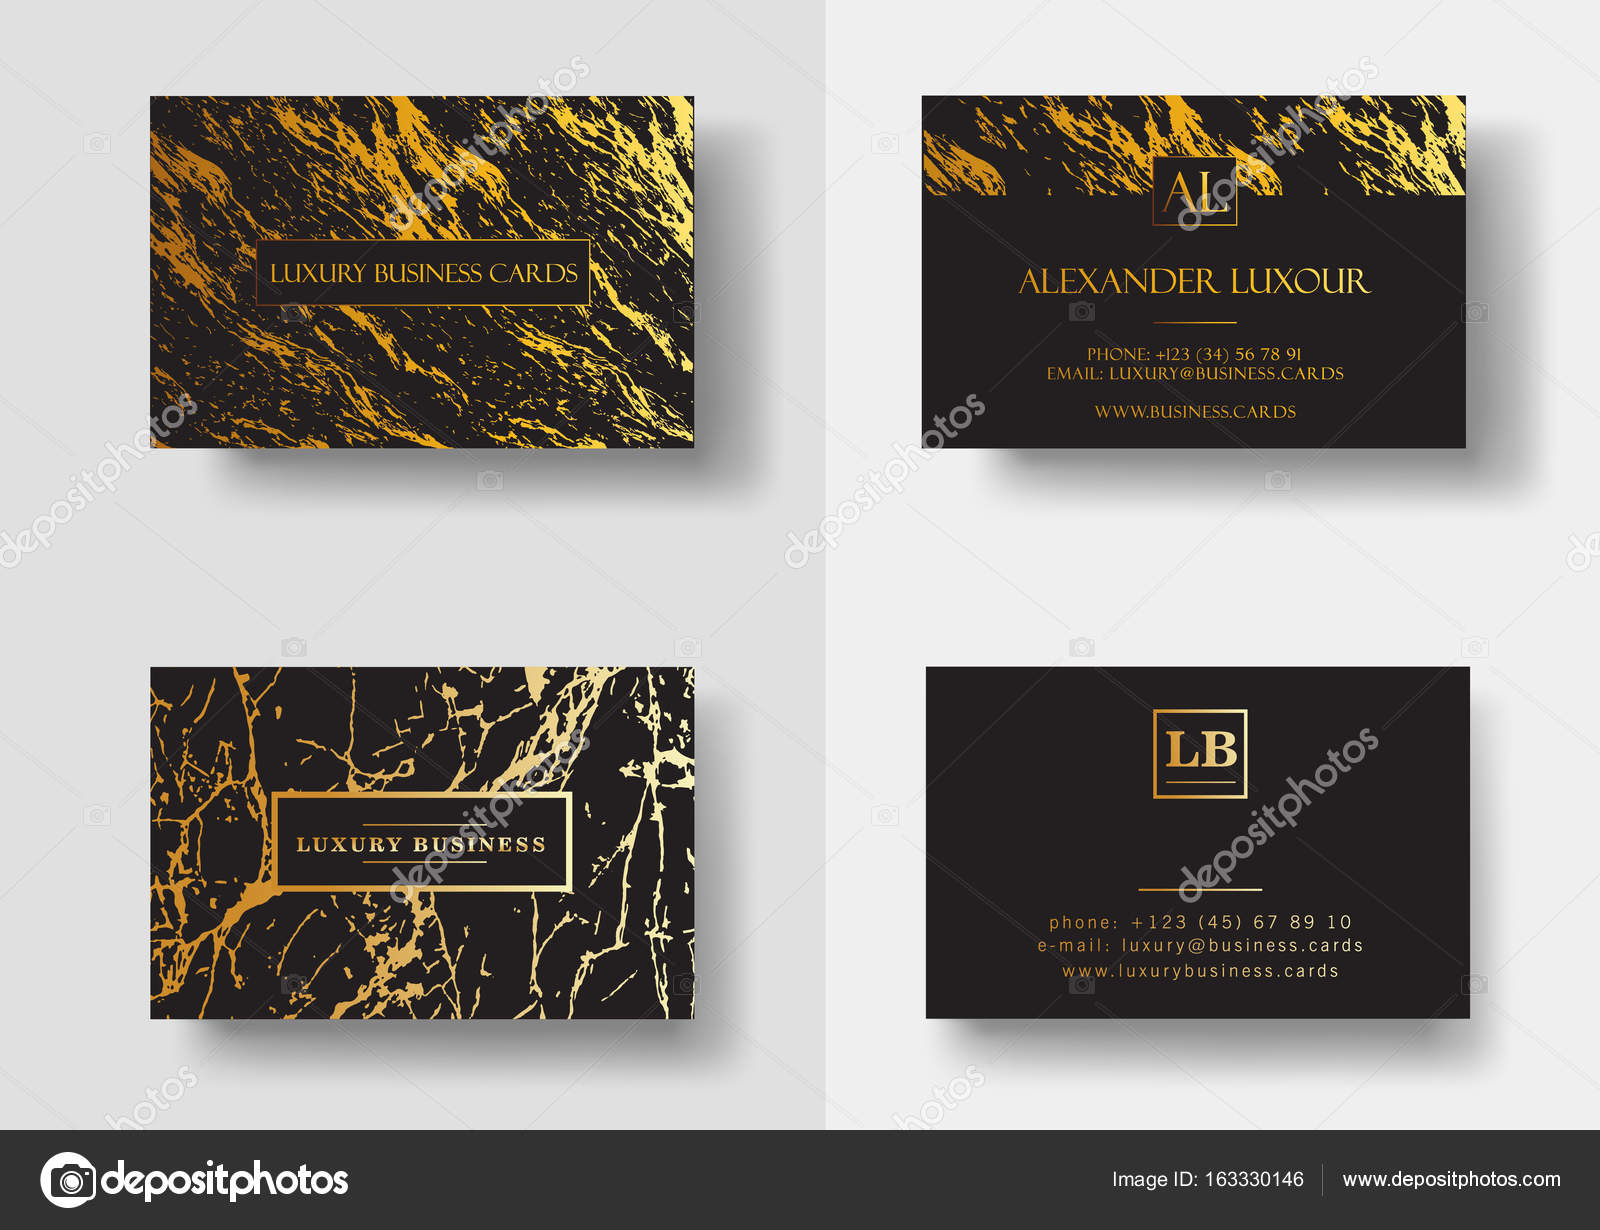 Elegant Black Luxury Business Cards With Marble Texture And Gold